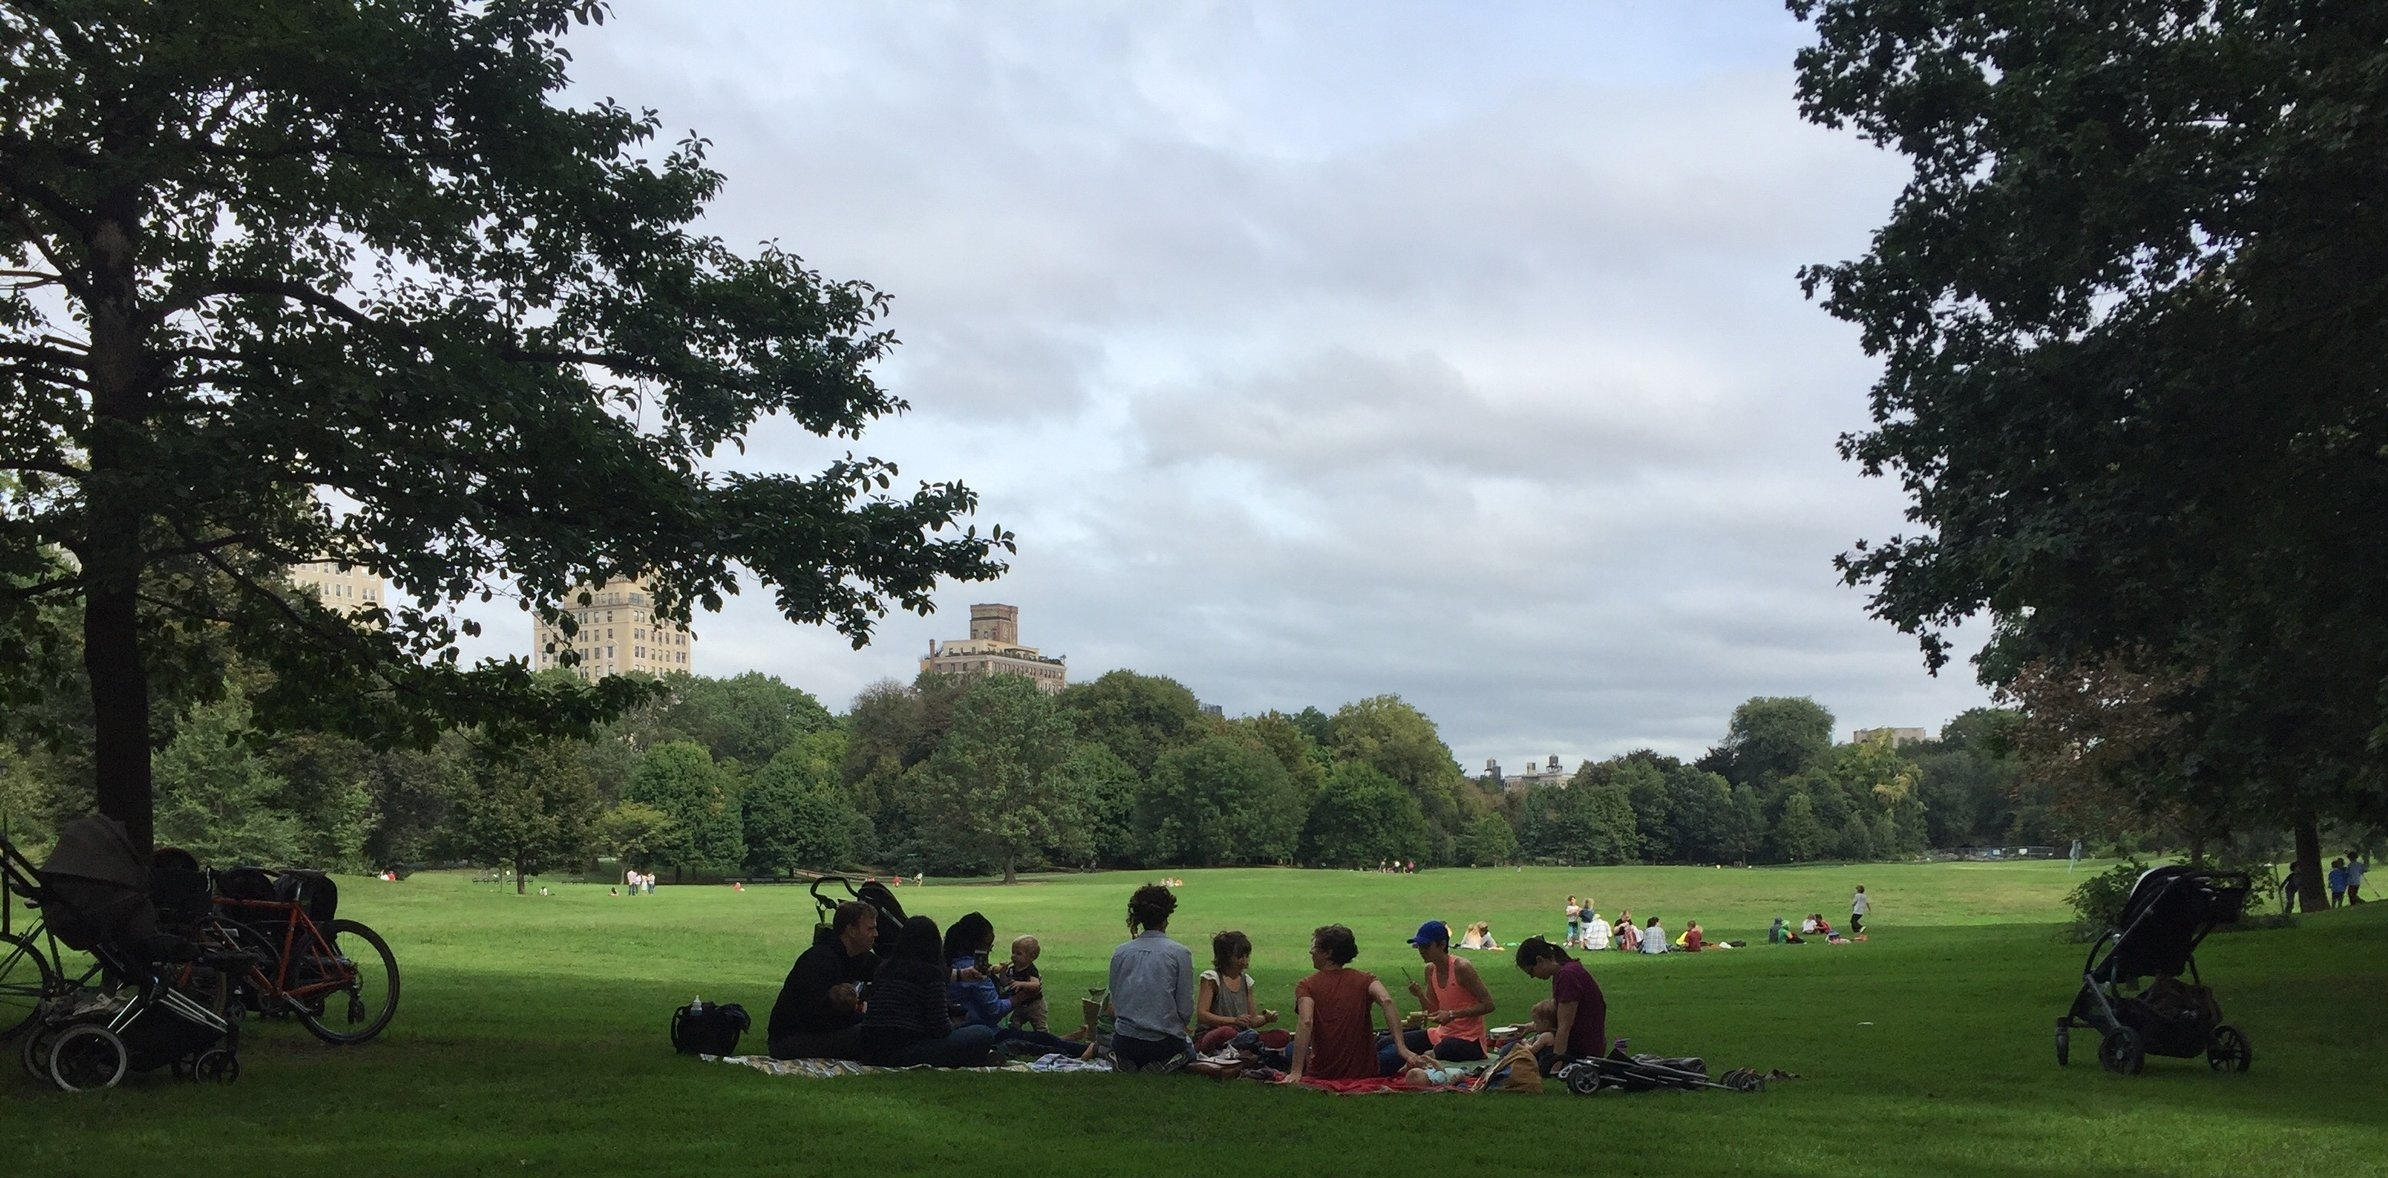 Summer classes are here! - Outdoor classes in Prospect Park begin June 11 with TWO summer sessions, totalling 11 weeks.Summer Session 1 begins June 11 and runs through July 27.Summer Session 2 begins August 13 and runs through September 7.There will be no class June 14 or 15.(Is there class today?)